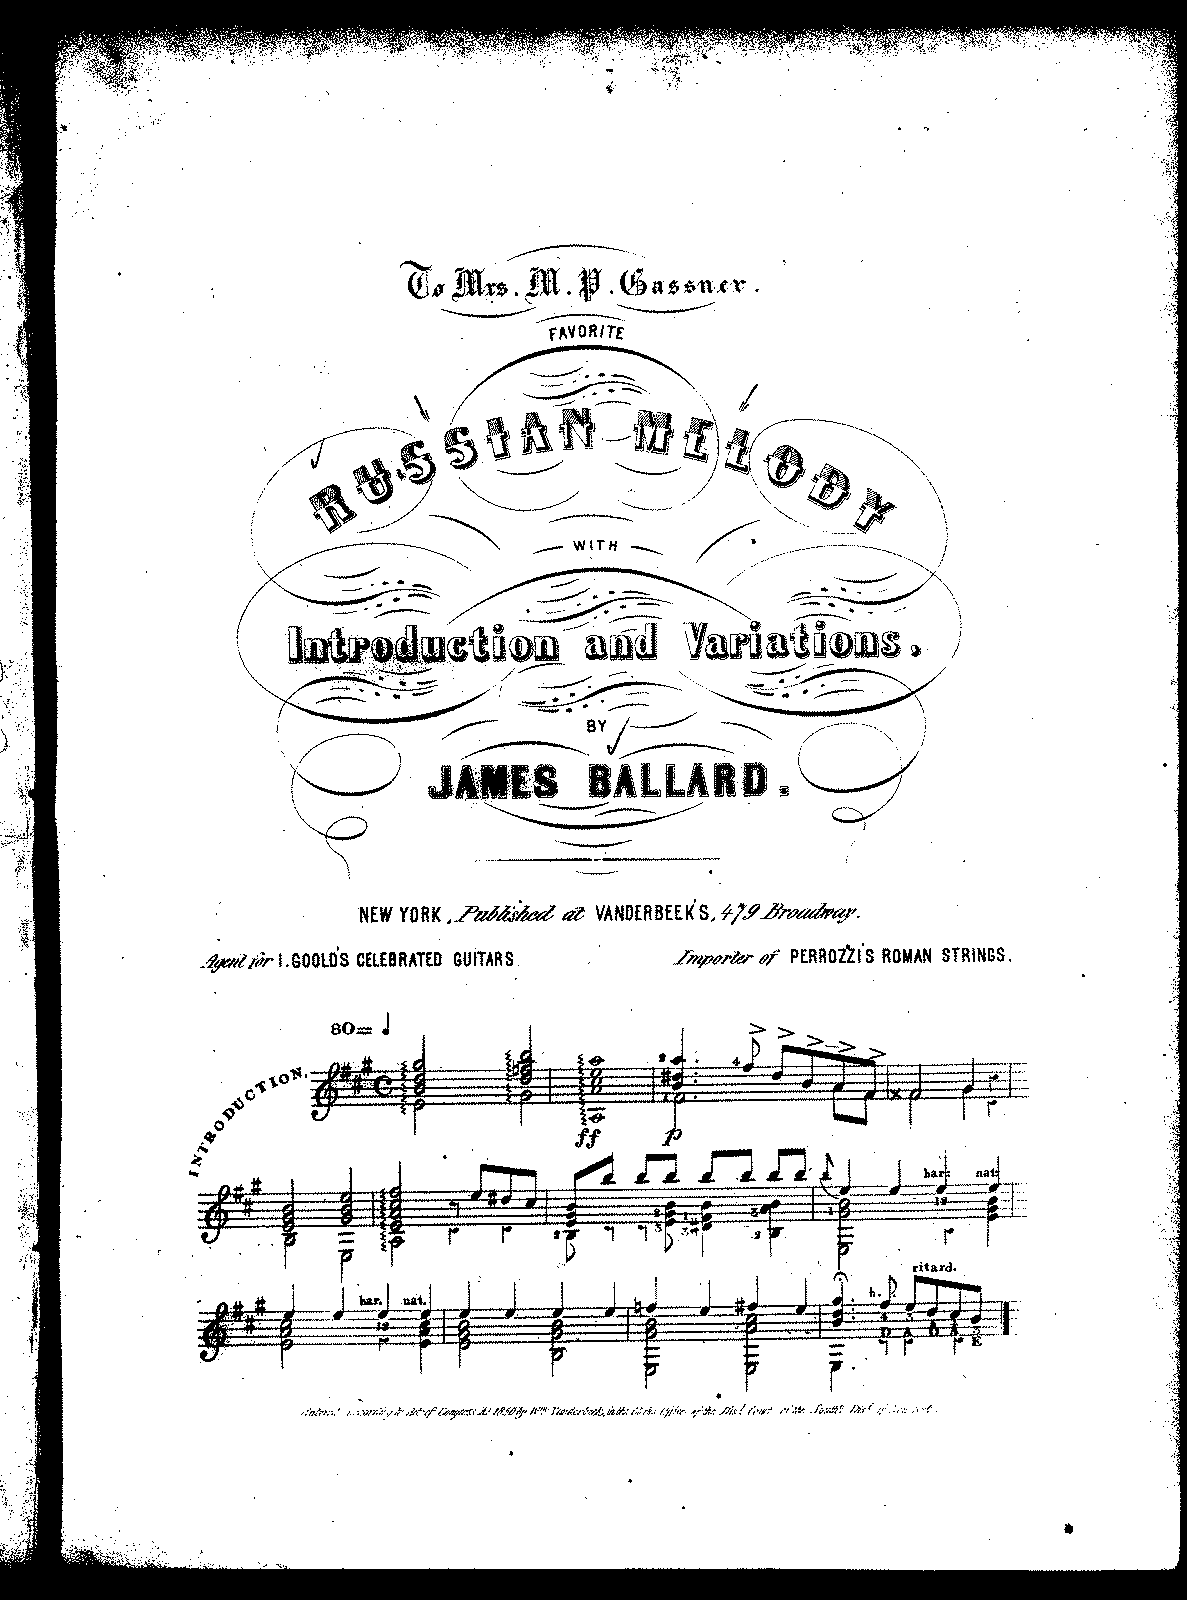 PMLP575827-BallardJames FavoriteRussianMelodyWithIntroductionAndVariations.pdf